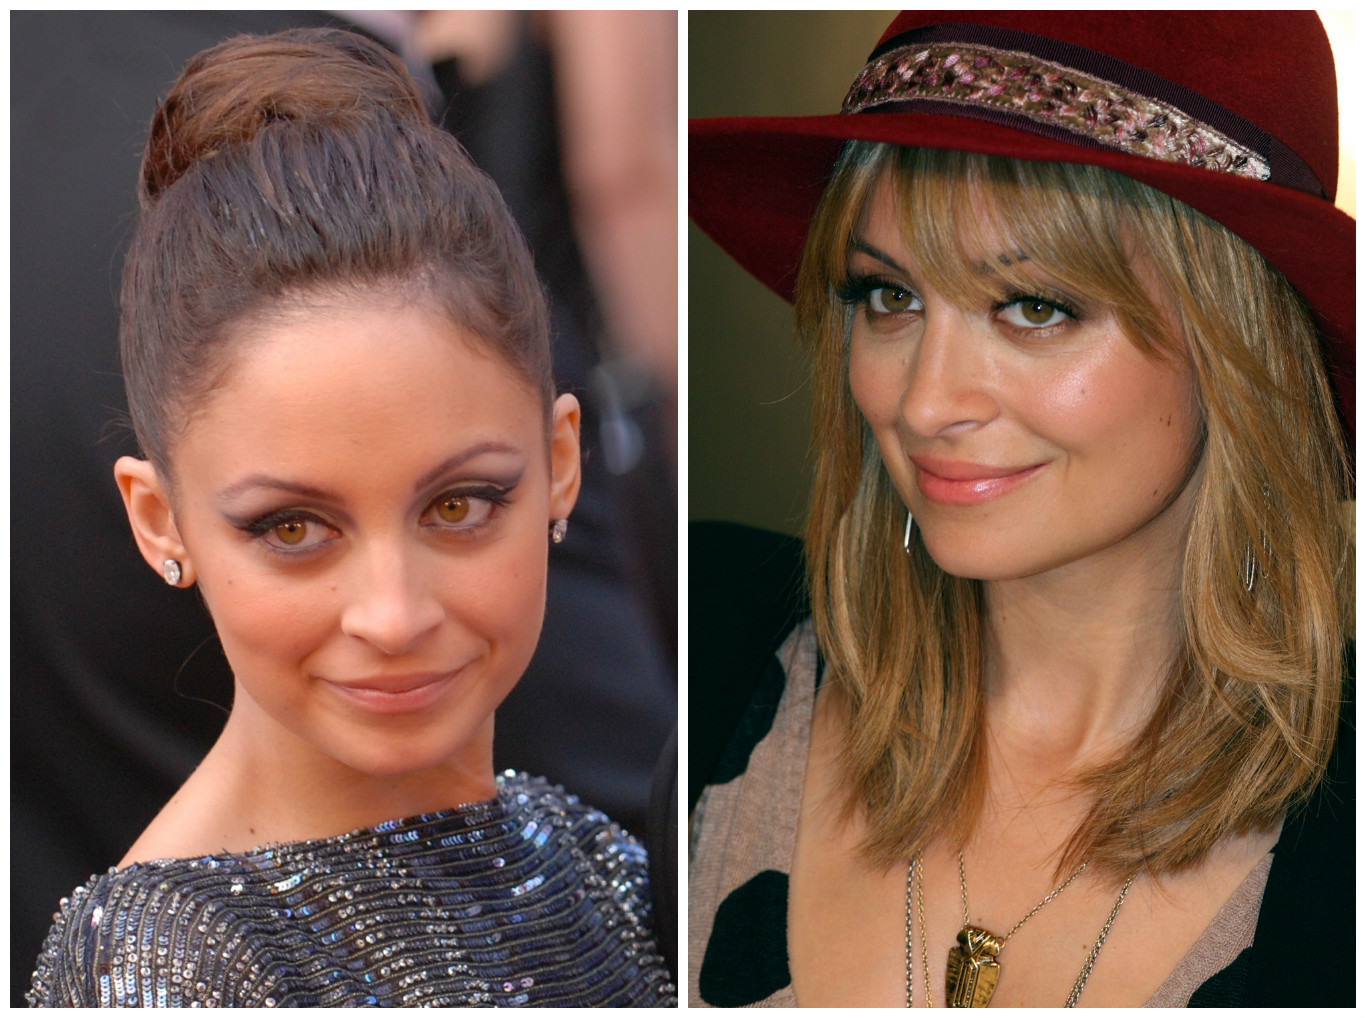 Nicole Richie at the Oscars | © Photo by Sgt. Michael Connors/WikiCommons / Nicole Richie in 2012 | © Eva Rinaldi/WikiCommons